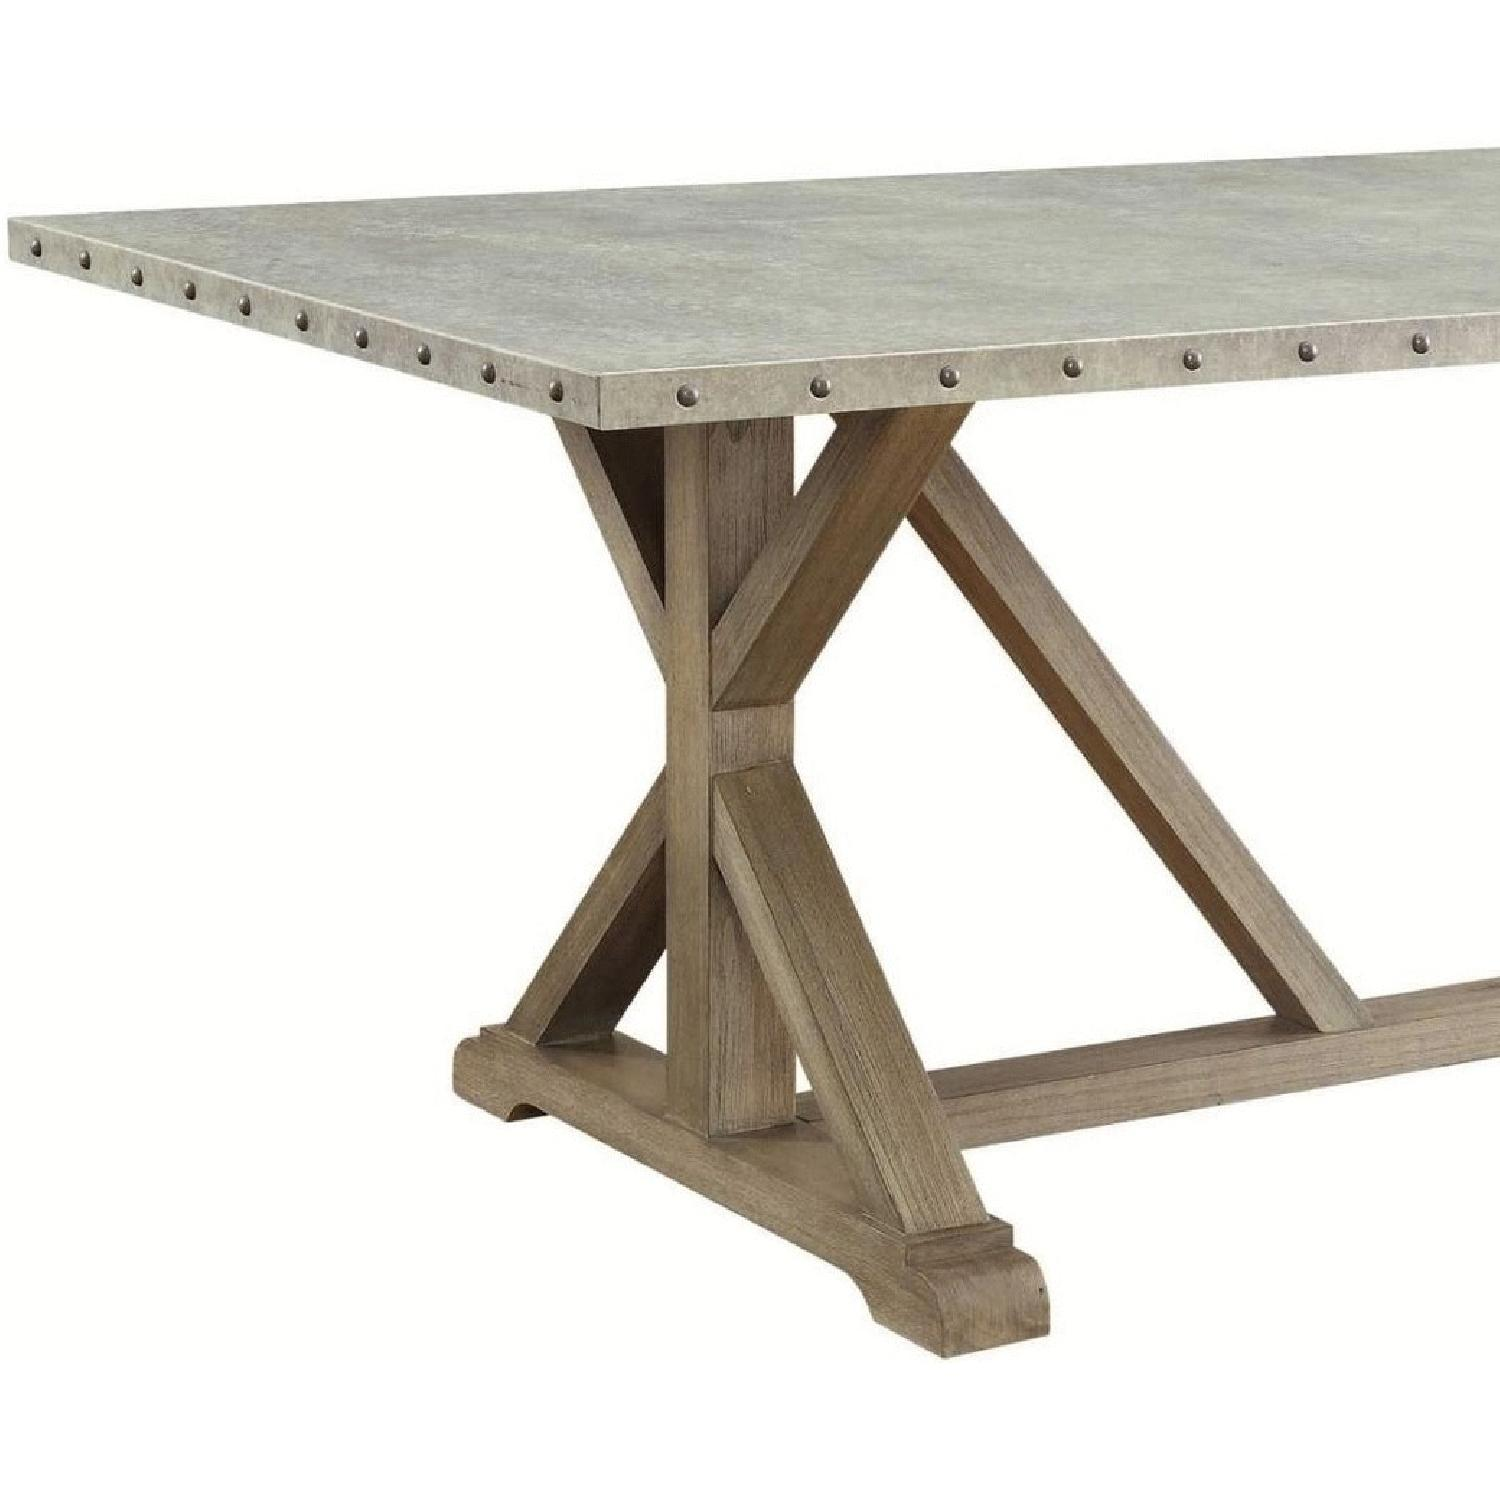 Industrial Vintage Style Dining Table w/ Handcrafted Top - image-5